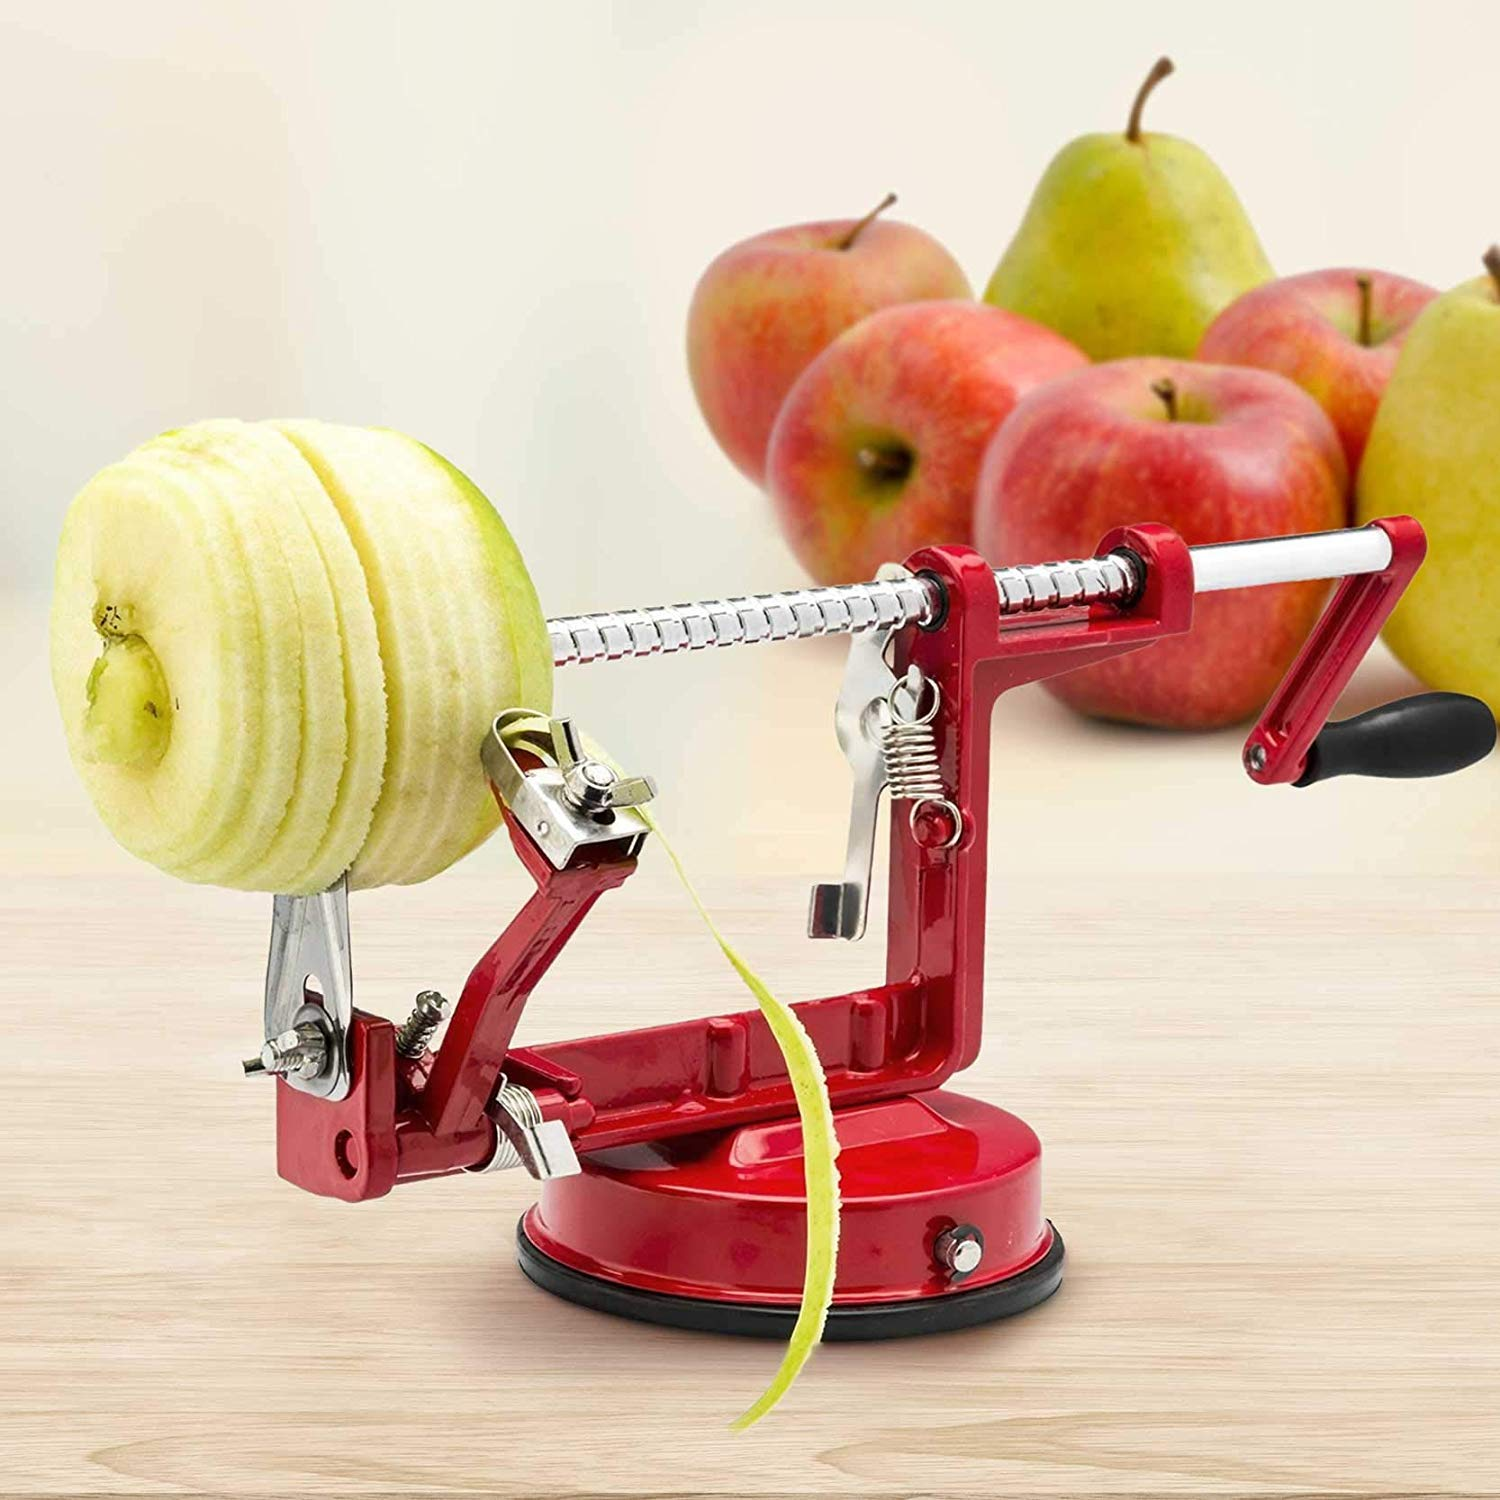 Apple peeler, corer, spiralizer